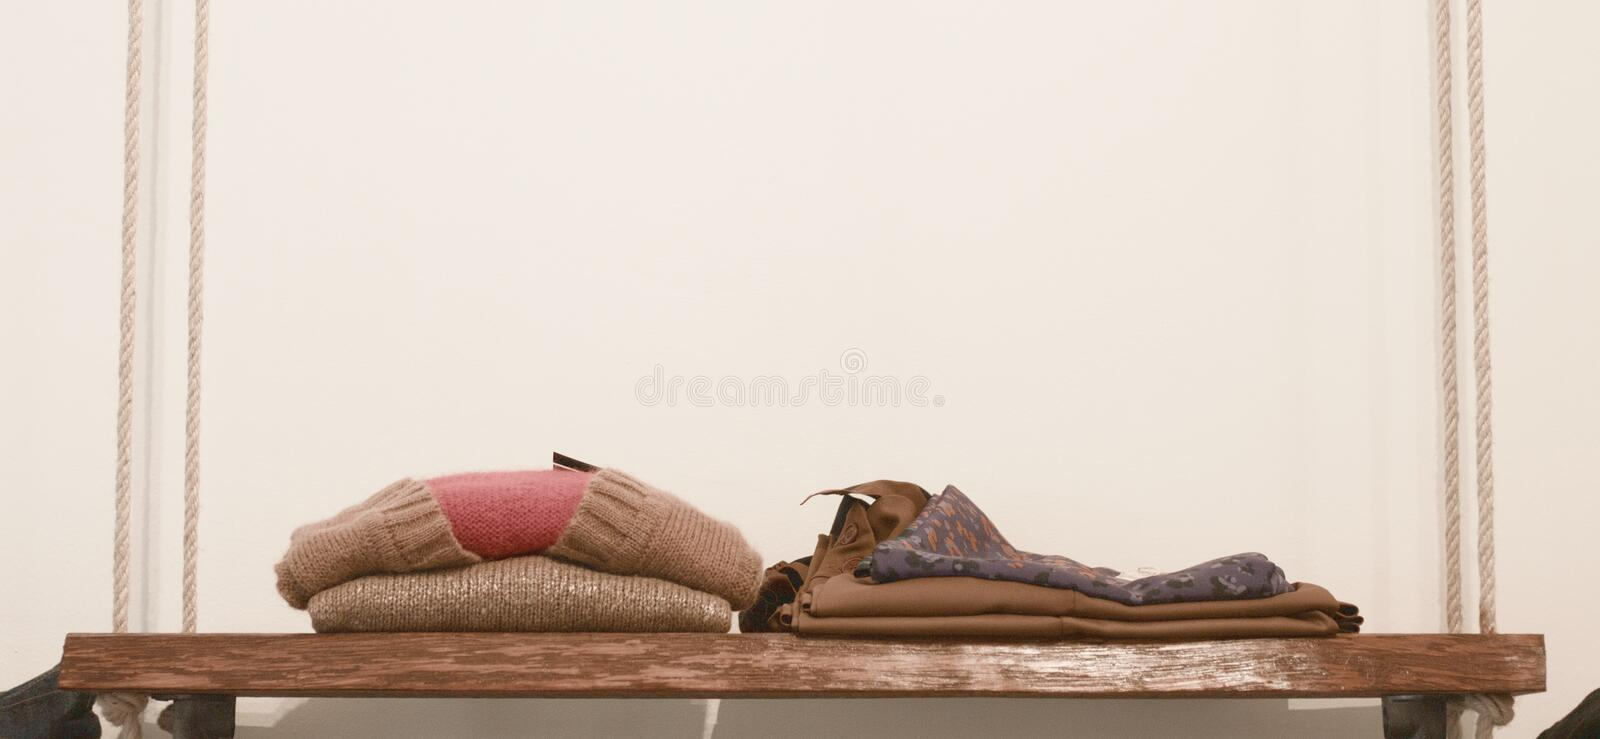 Wooden clothes hanger with tubes and cord - Vintage background royalty free stock images